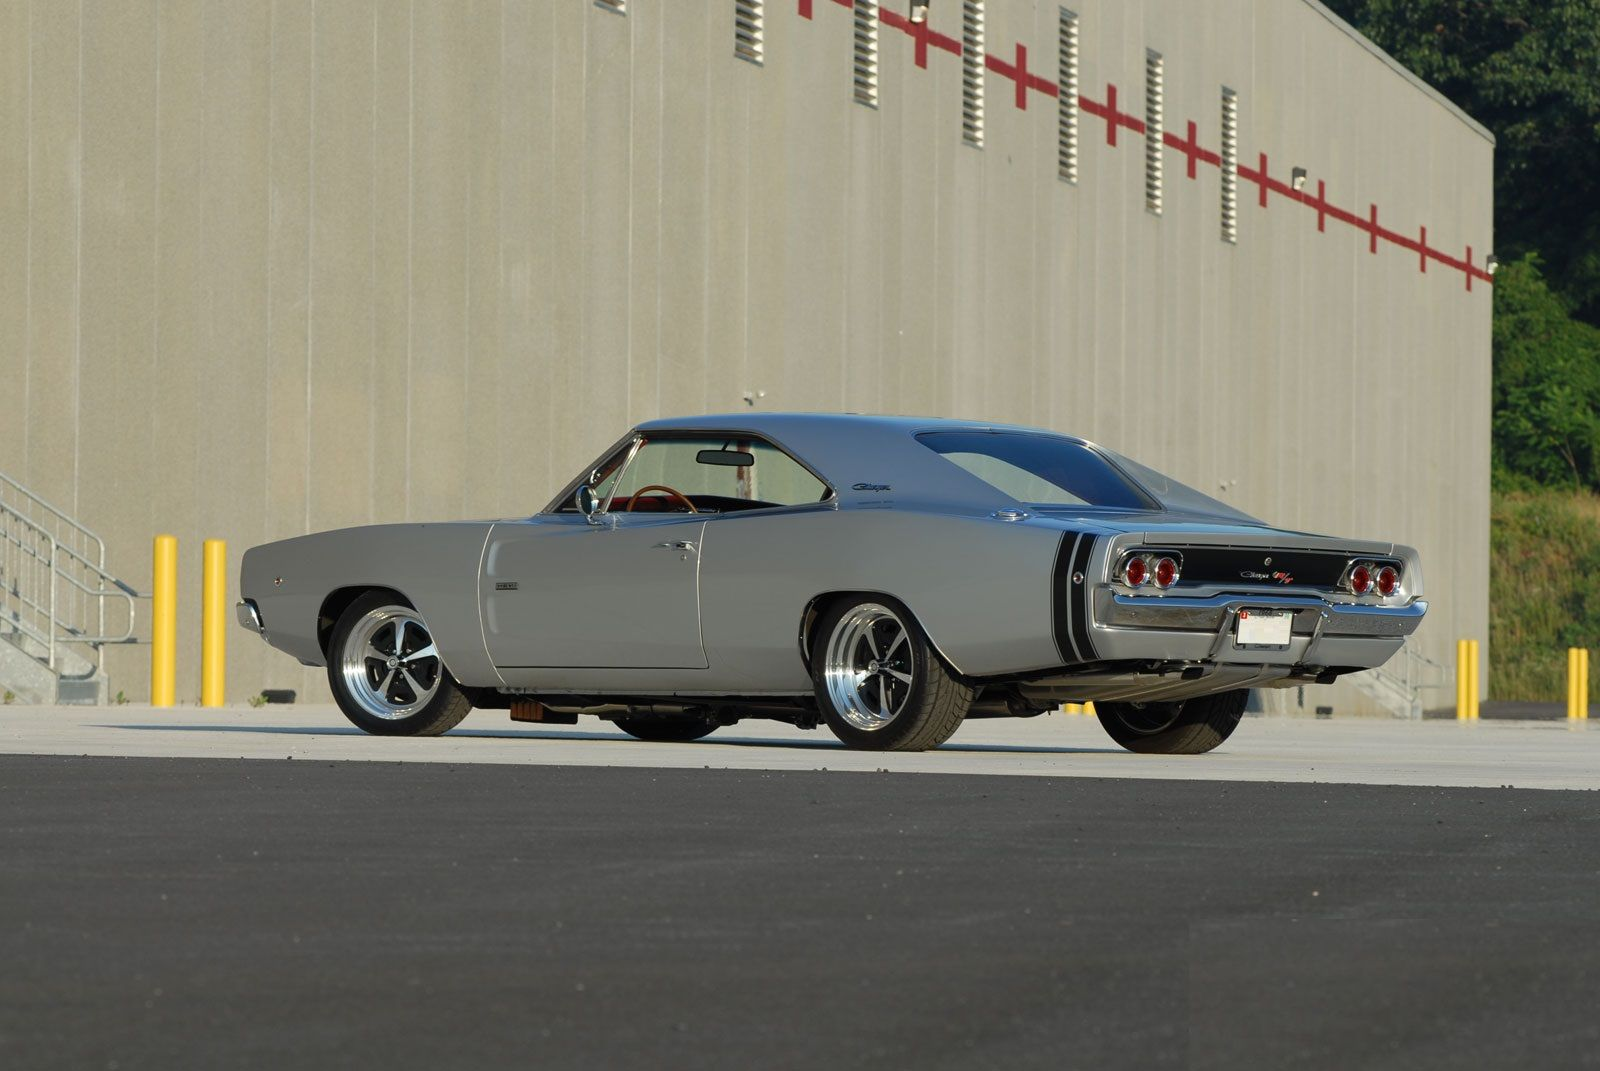 1968 Dodge Charger For Sale - The first generation Dodge Charger is ...